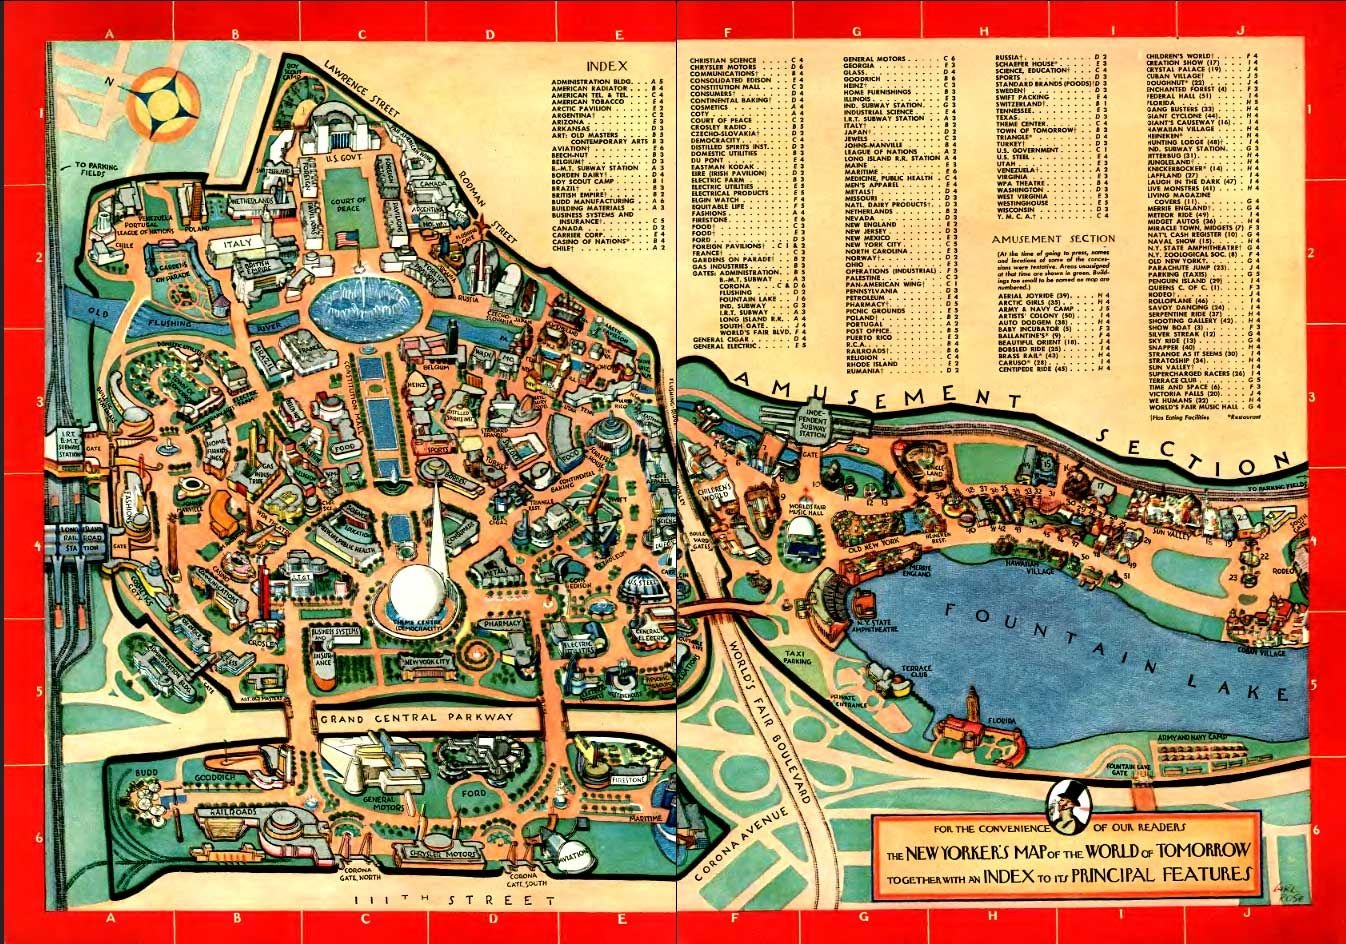 NYC World's Fair 39 | World's fair, Map, World of tomorrow on world cotton centennial map, ny world fair pavilion map, world fair site map, seattle center map,